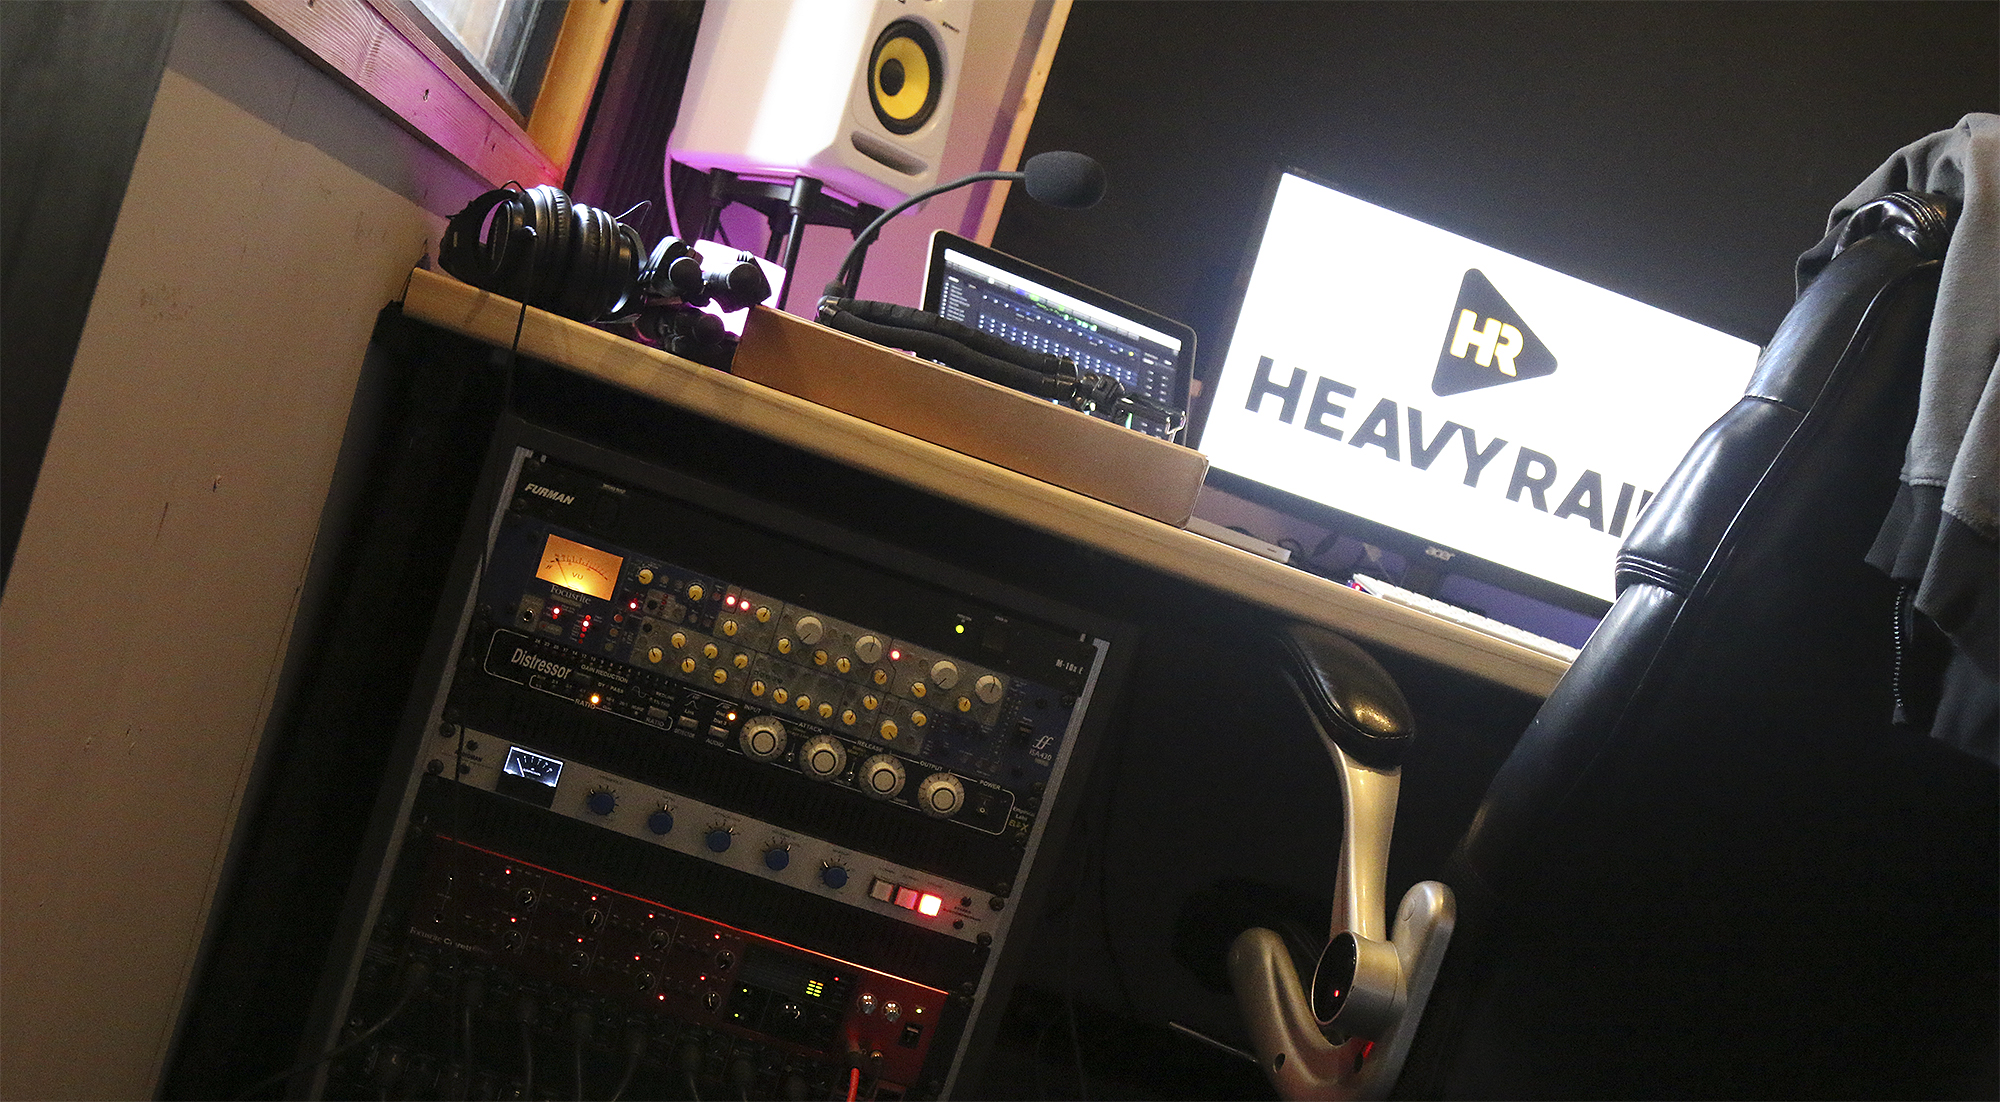 Heavy Rain Sound Studio